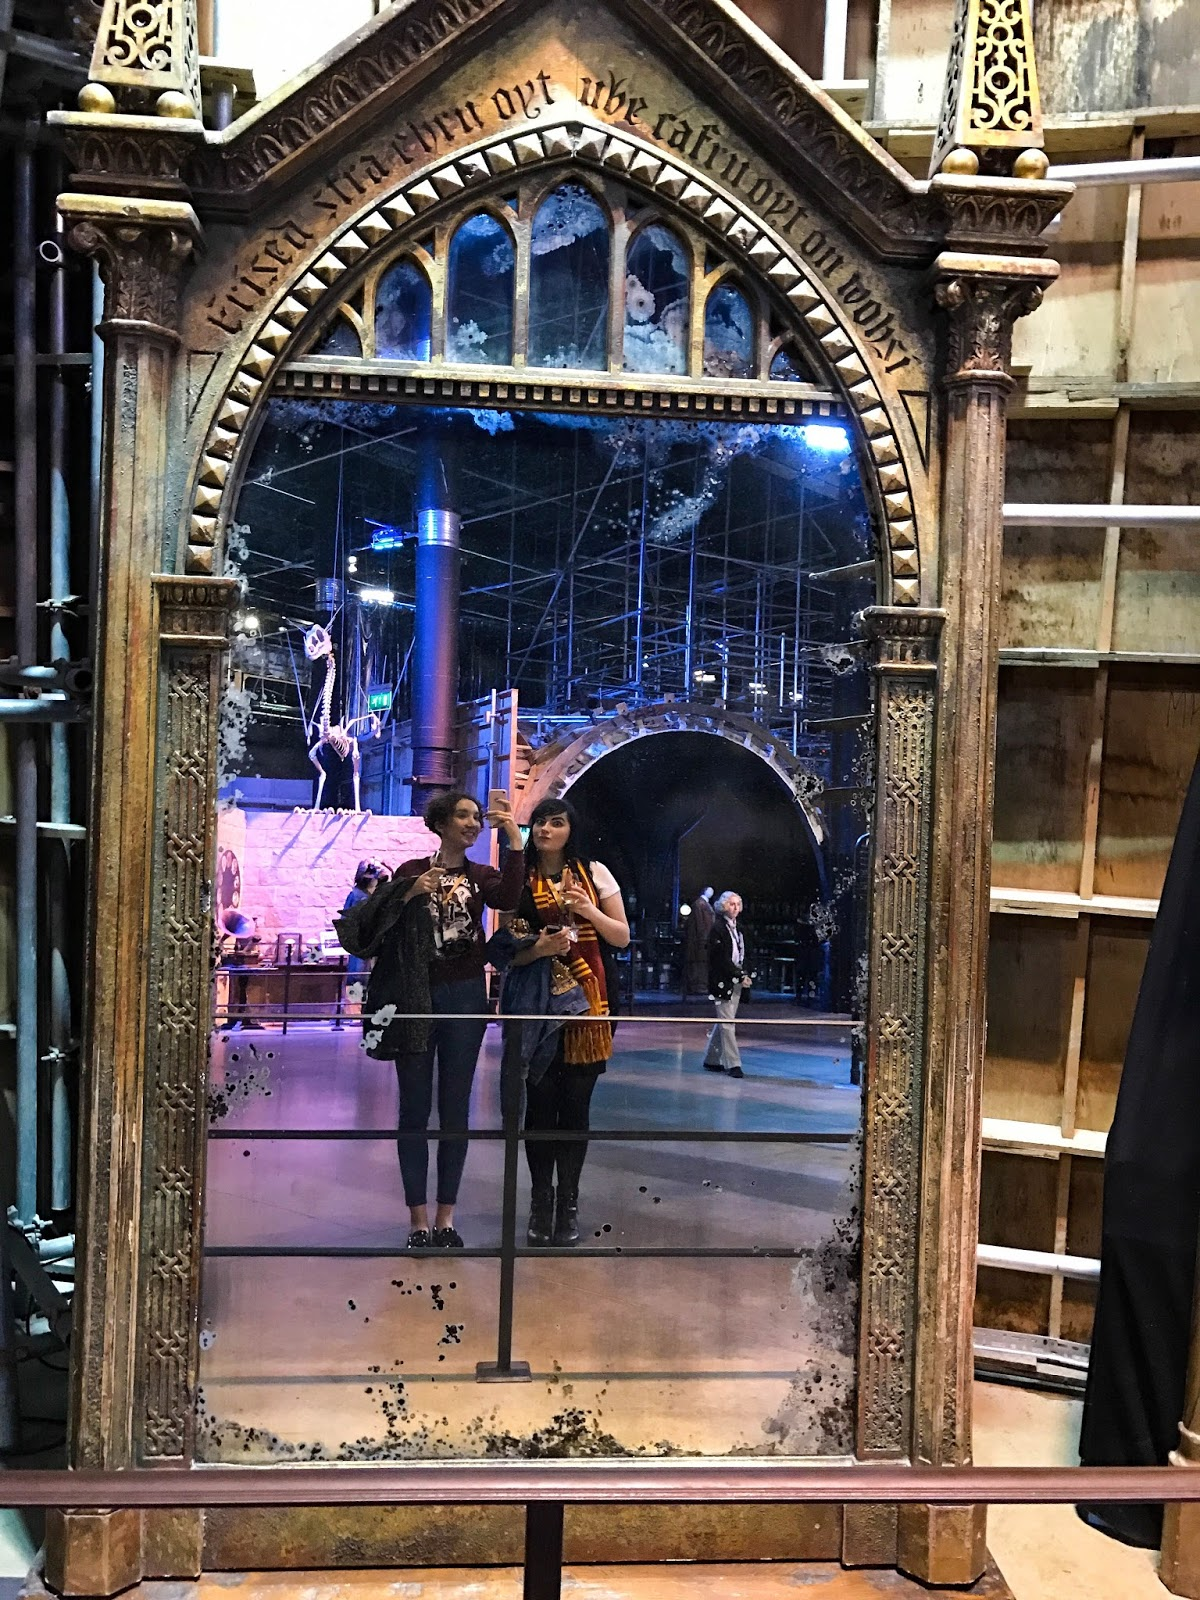 Mirror of Erised at Harry Potter Warner Brothers Studio Tour London